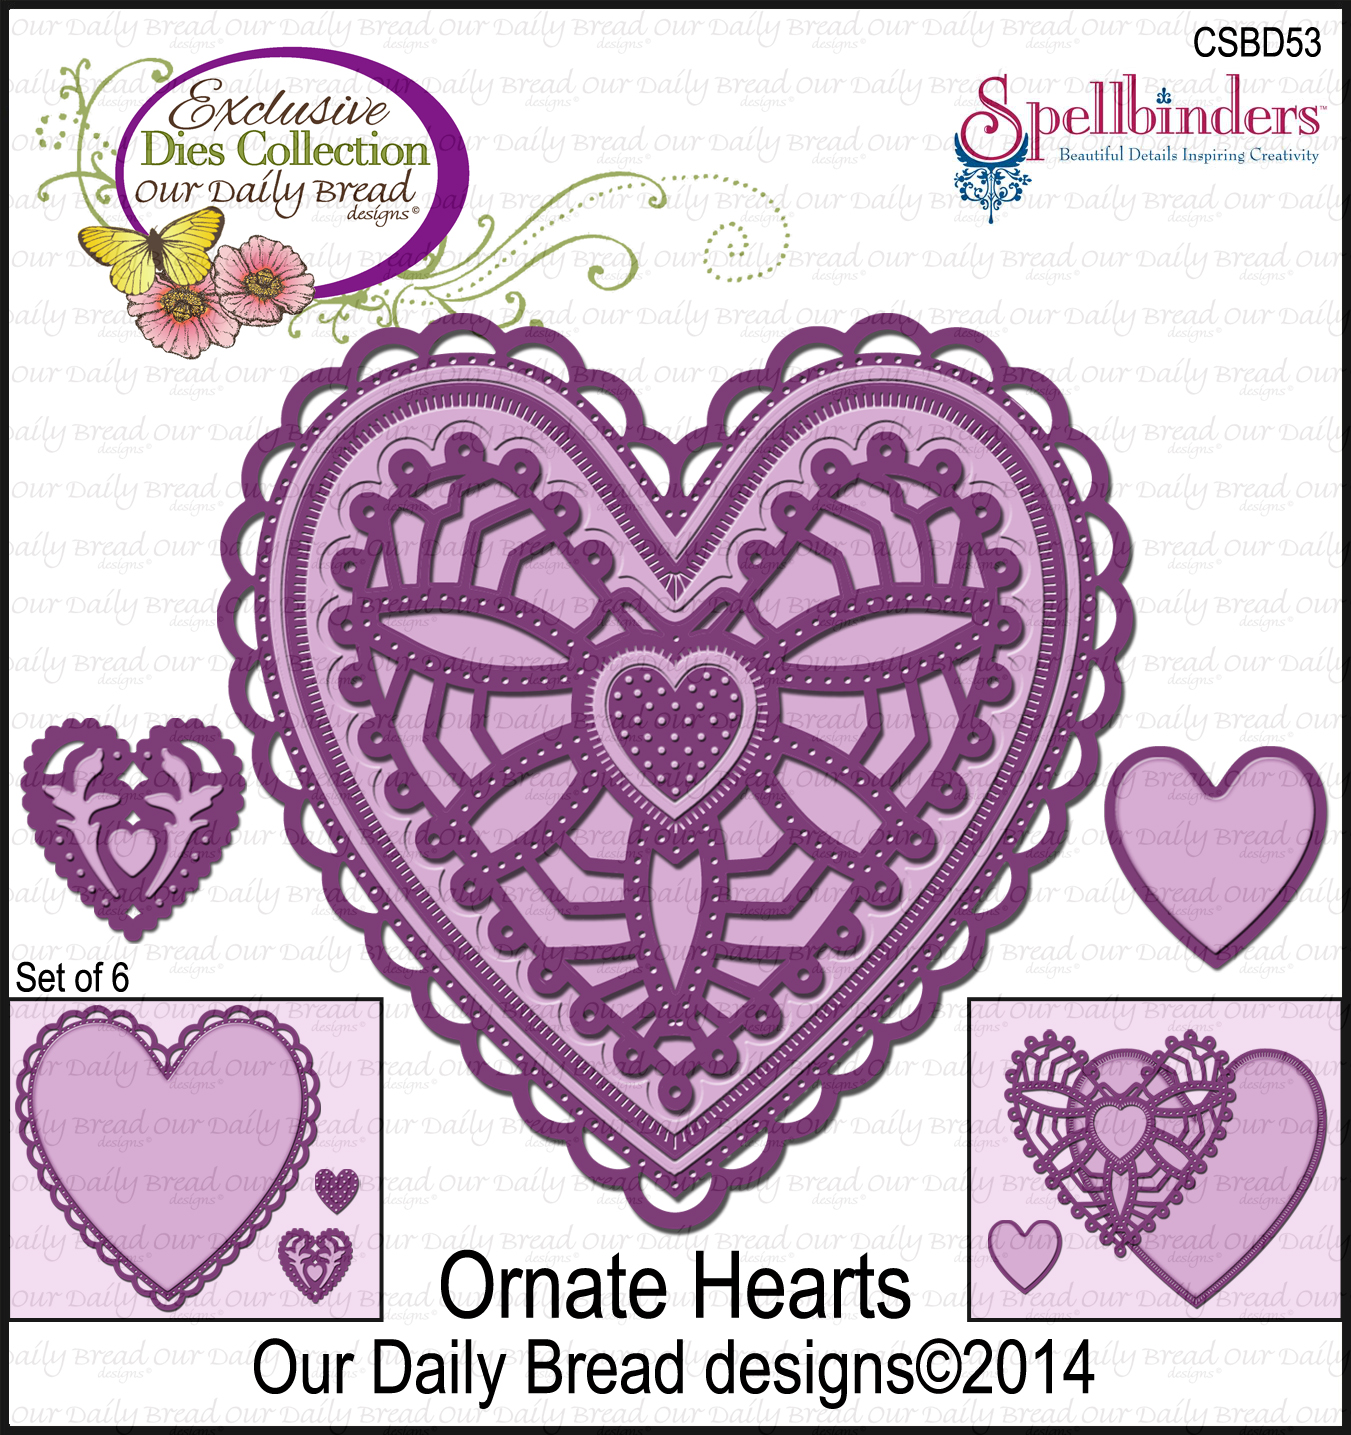 http://www.ourdailybreaddesigns.com/index.php/csbd53-ornate-hearts-dies.html